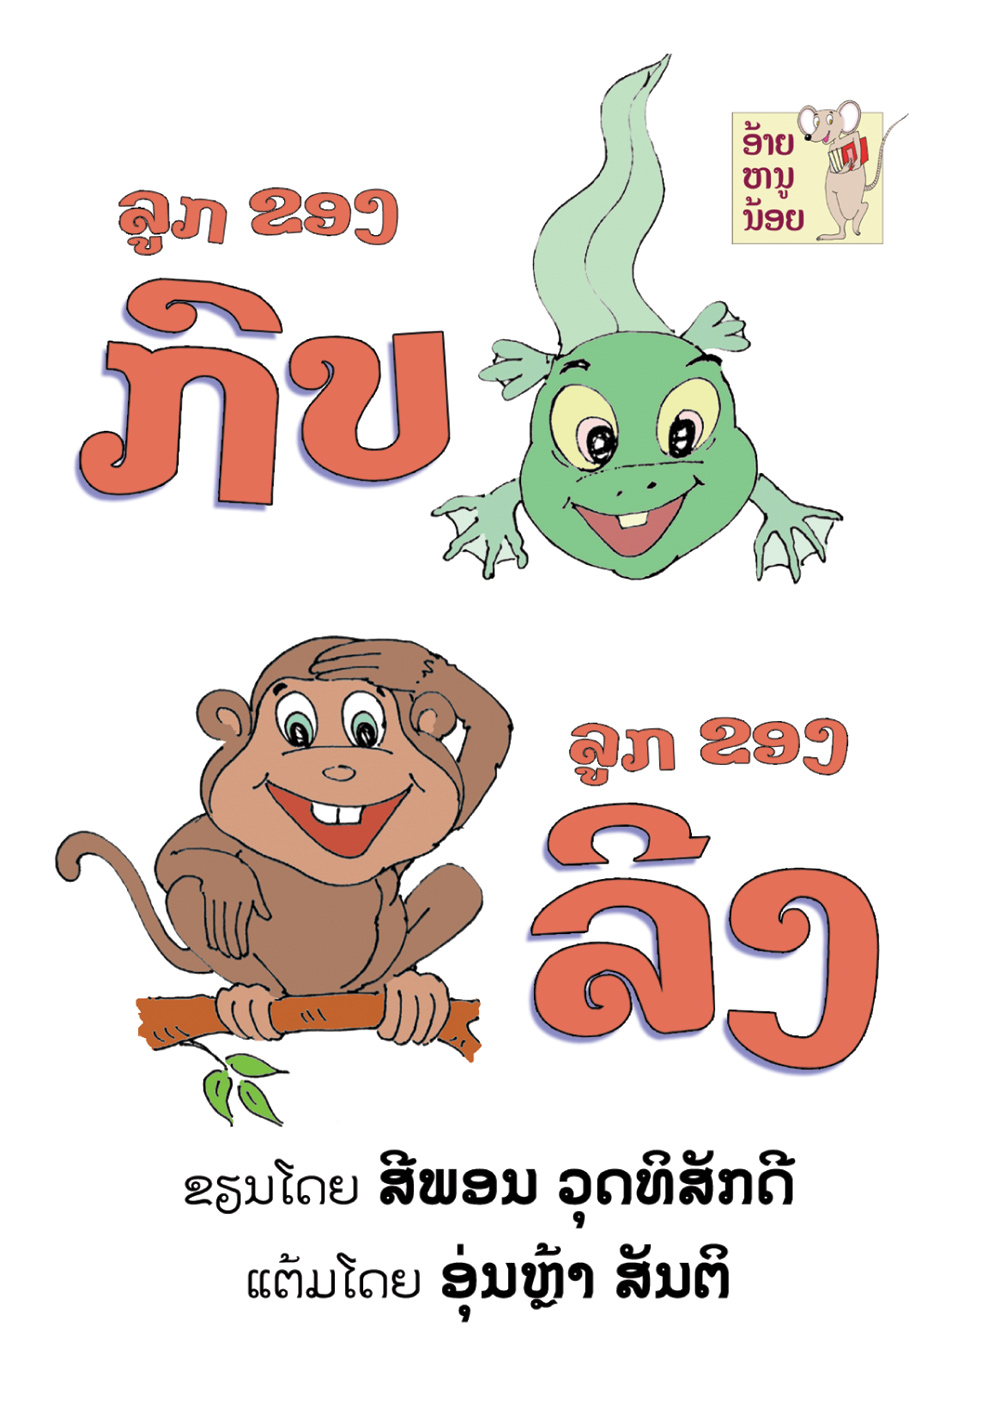 Baby Frog, Baby Monkey large book cover, published in Lao language